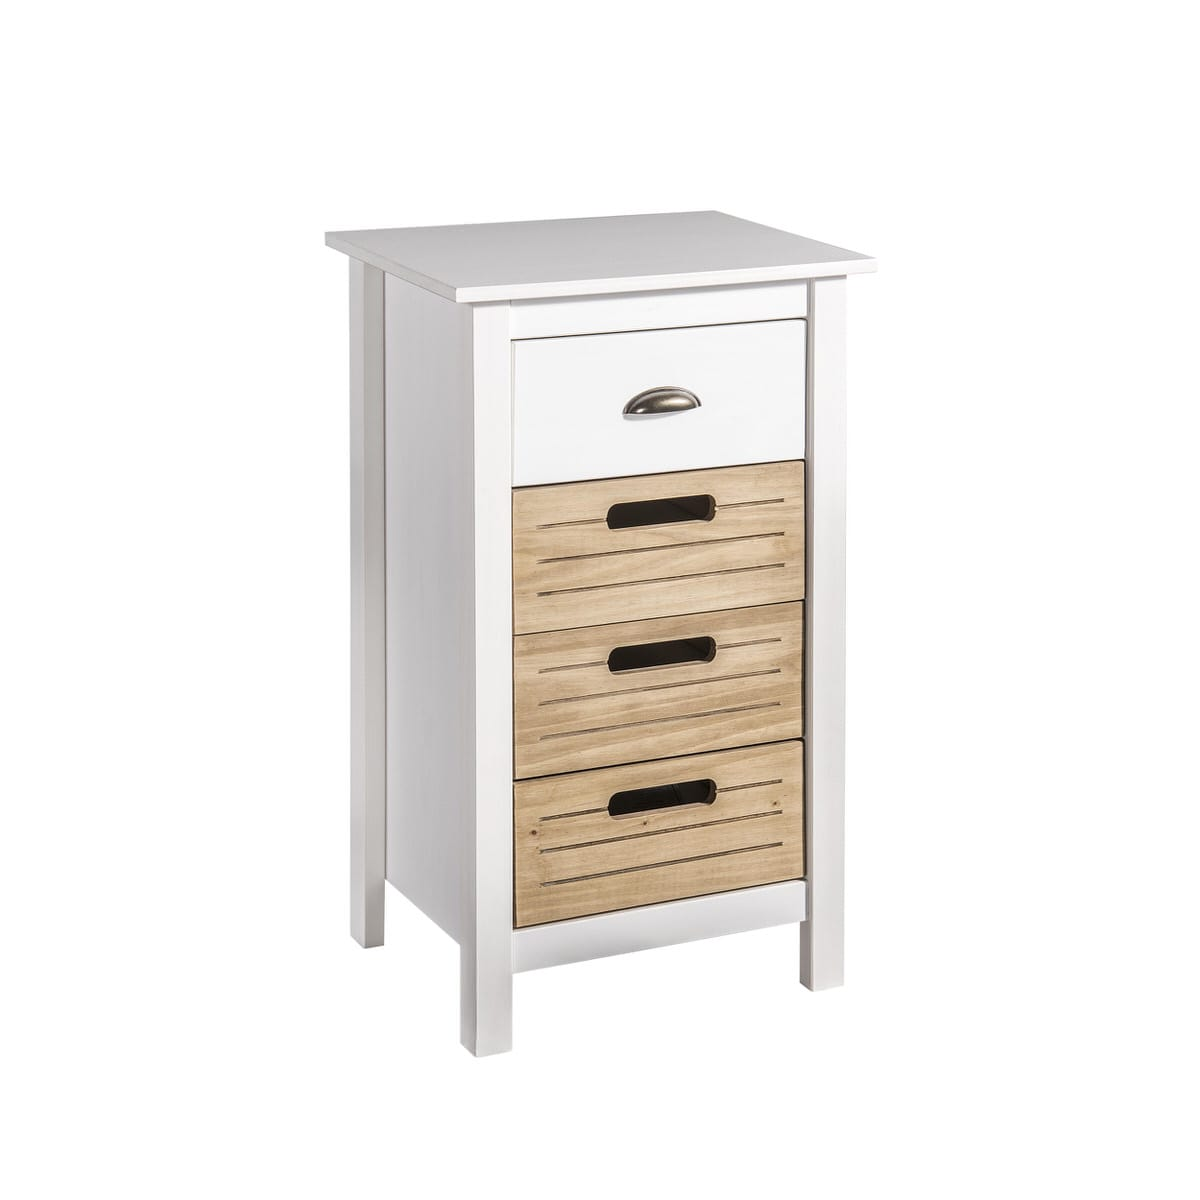 Irving Rustic Mid Century Modern 4 Drawer 3149 Inch White Natural